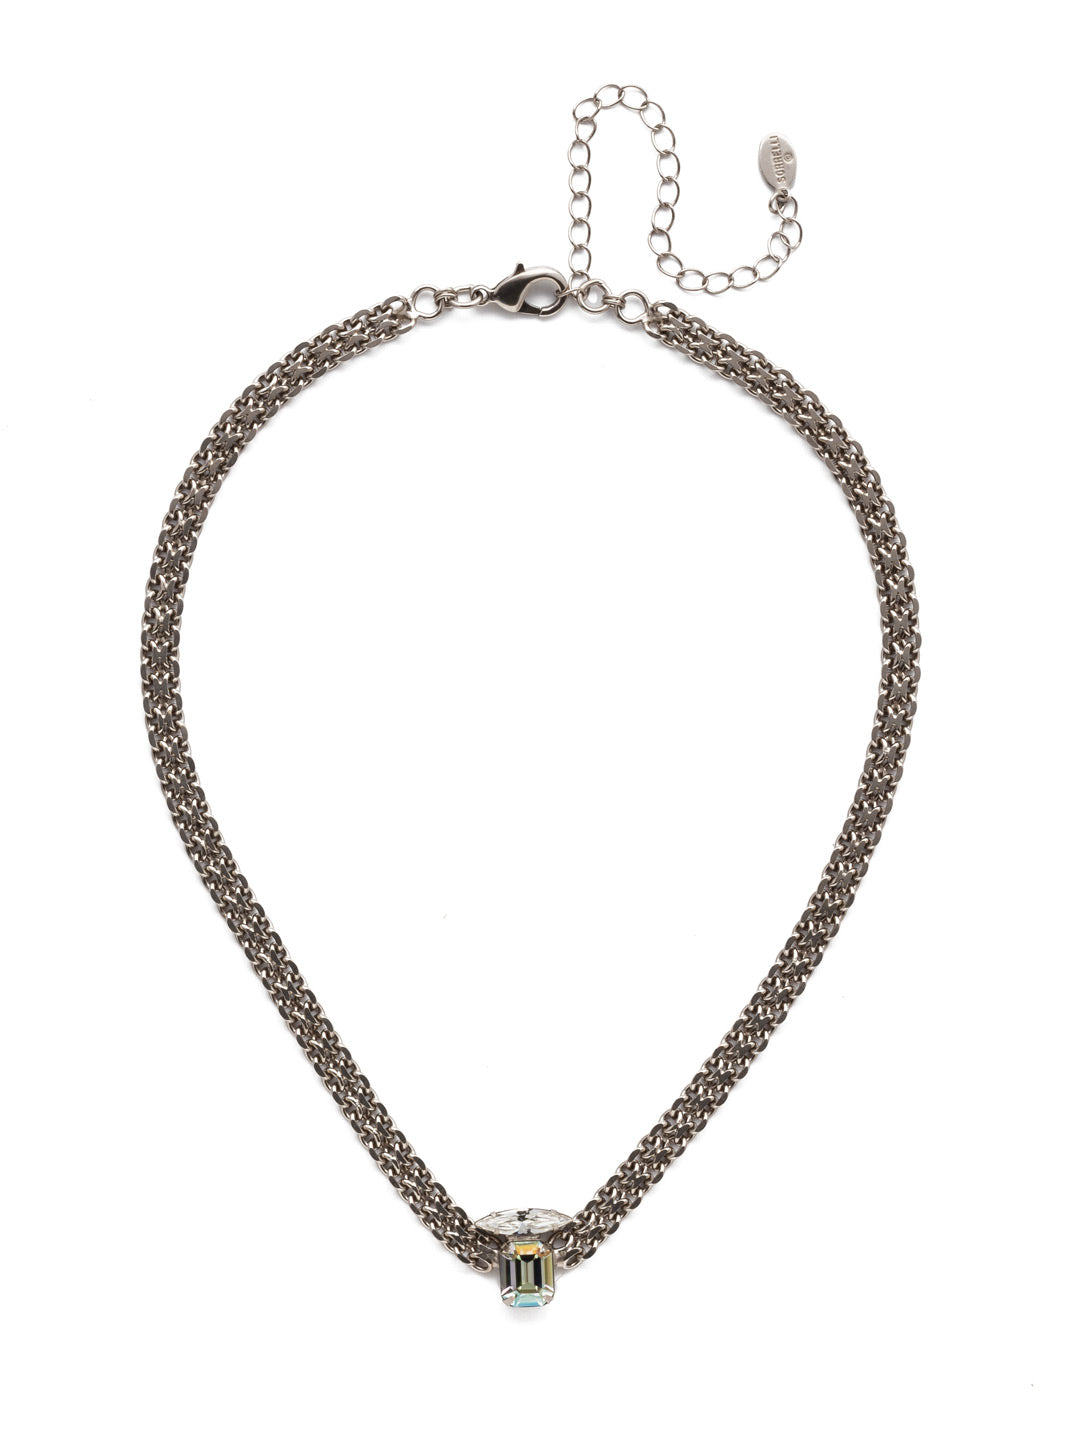 Giselle Tennis Necklace - NEP15ASCRE